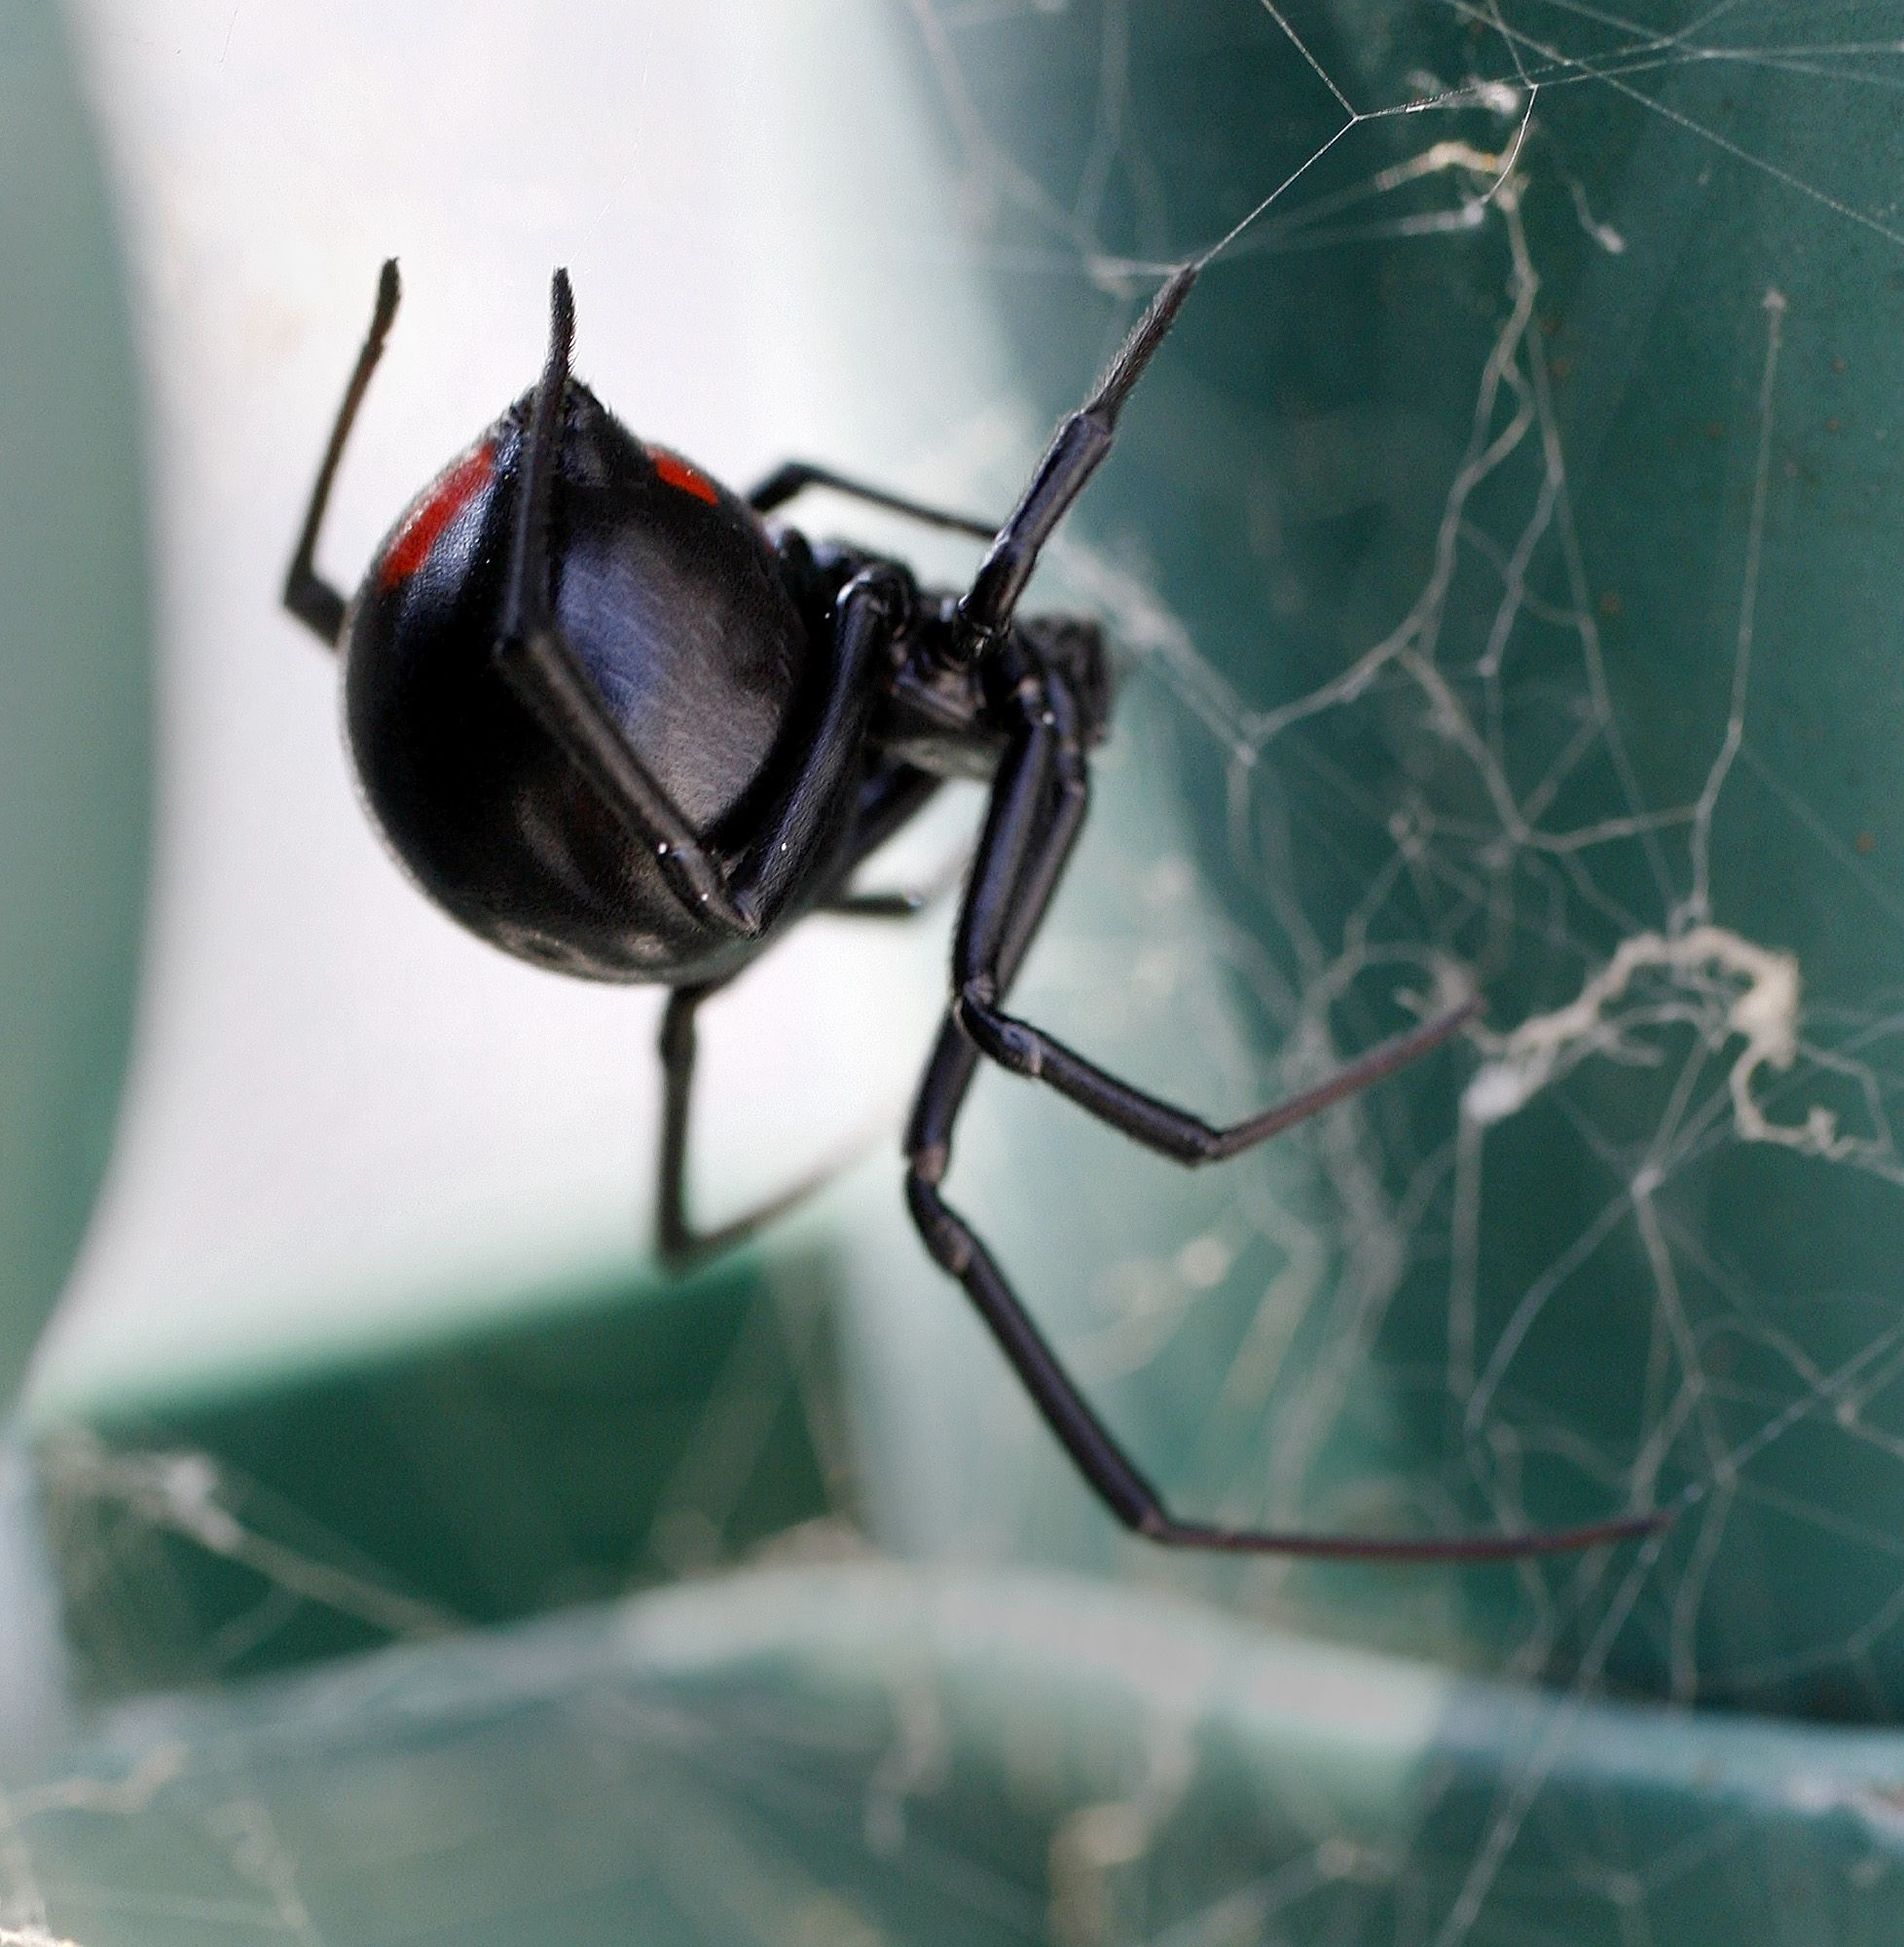 Black widow spider crawls out of bag of grapes and bites woman